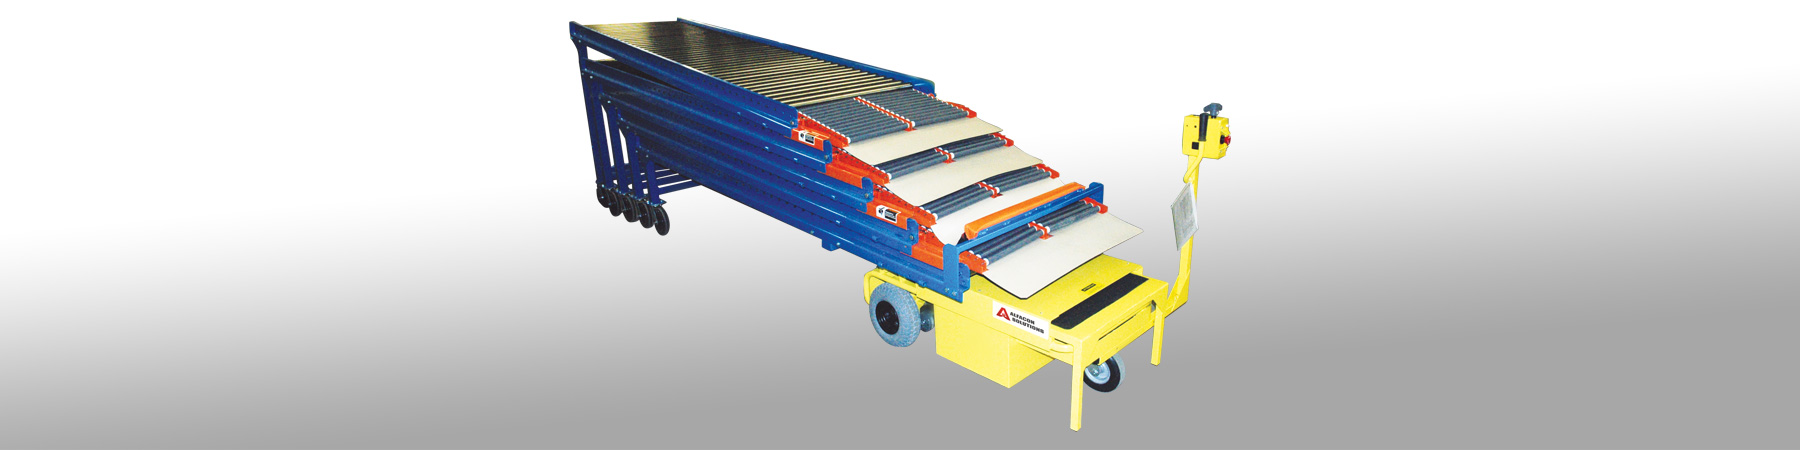 extendable gravity conveyor